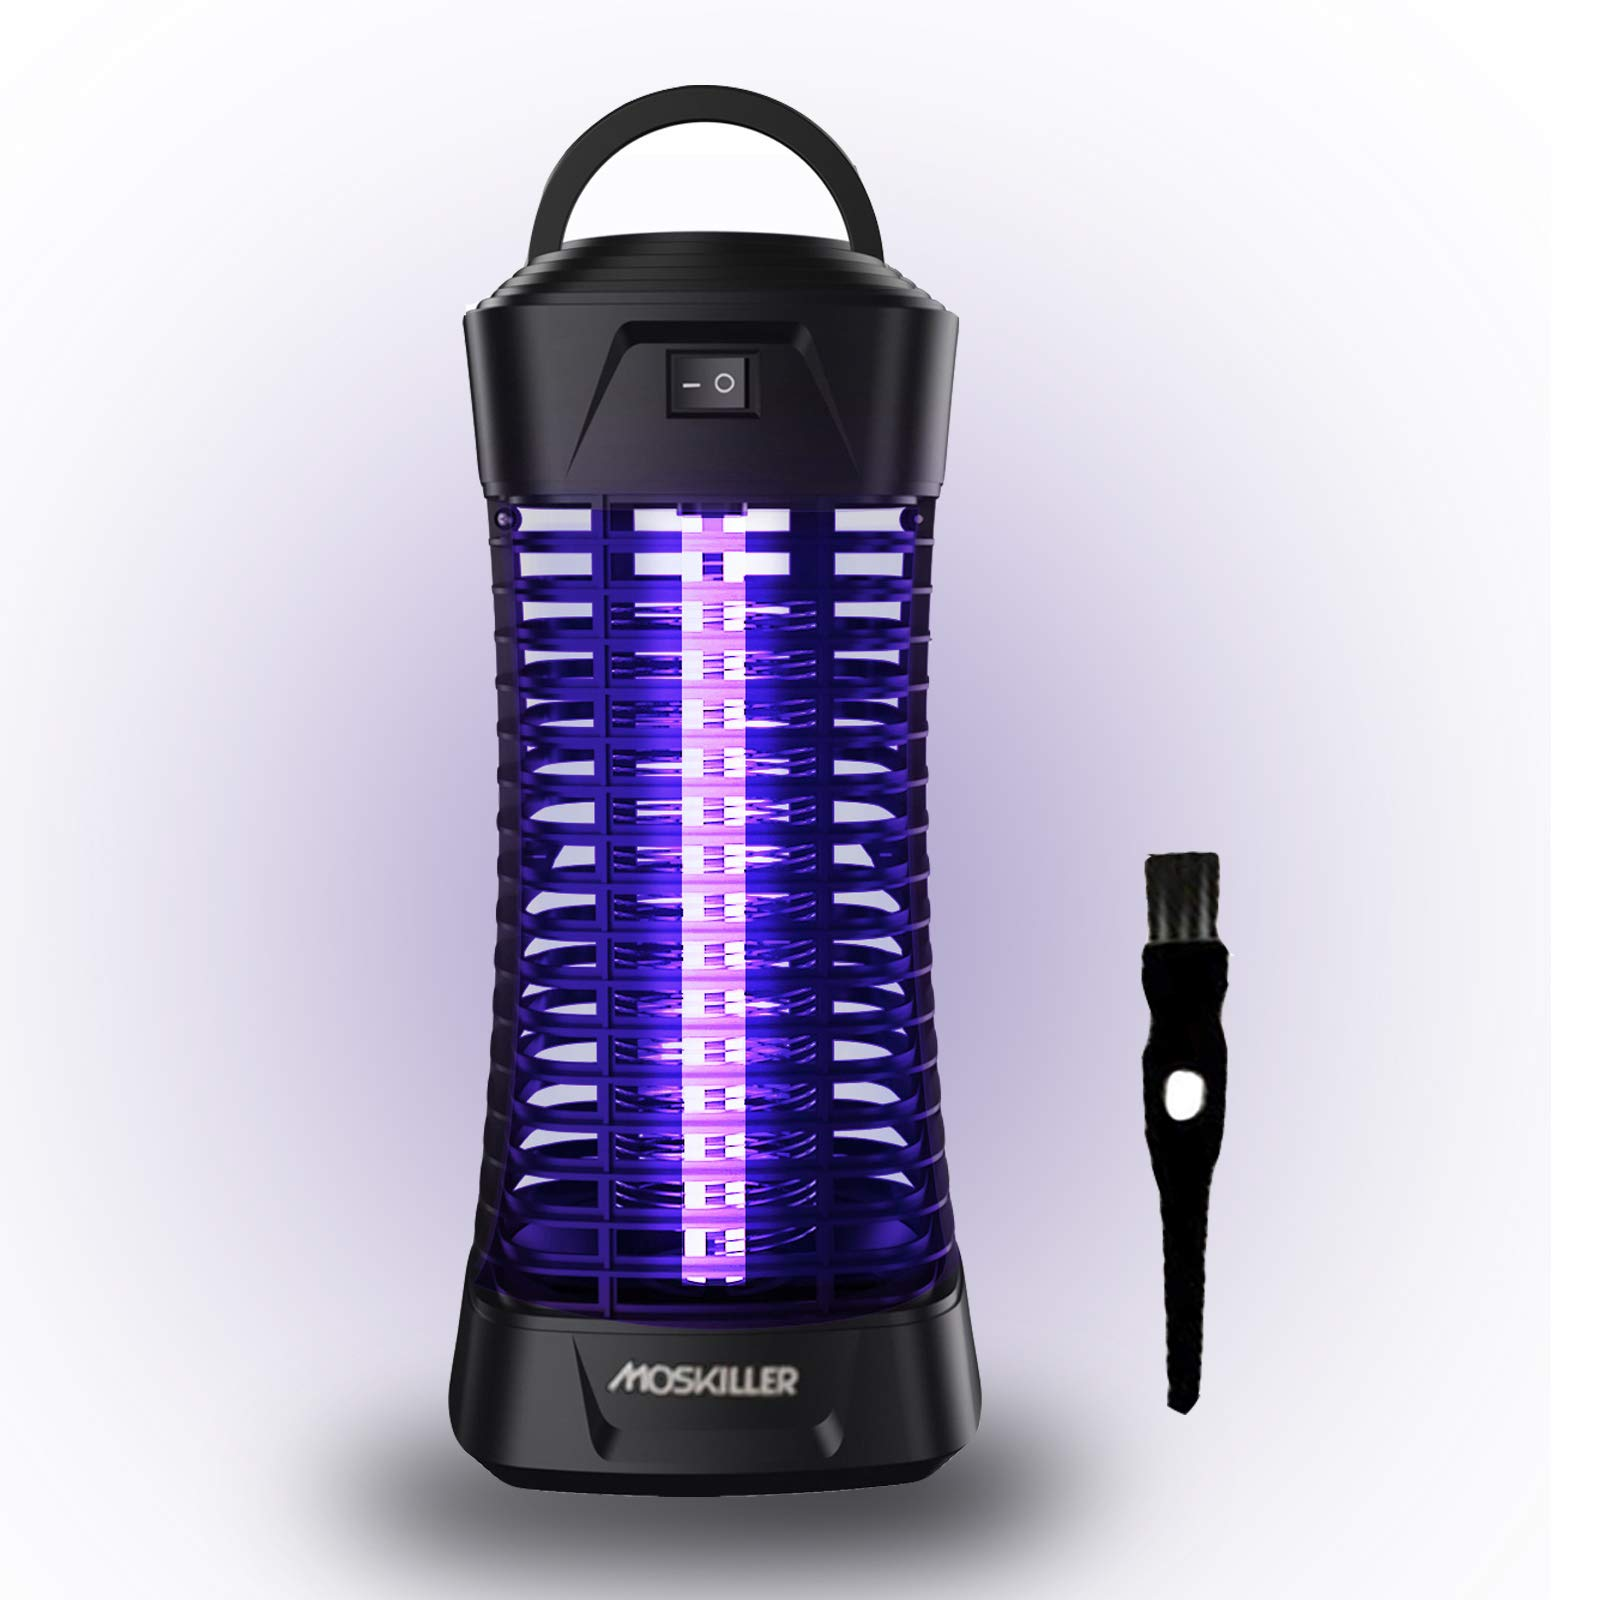 seenlast Mosquito Killer Lamp, Electric Fly Bug Zapper Insect Pest Control Repeller Catcher with UV LED Light Trap, Portable for Indoor Use